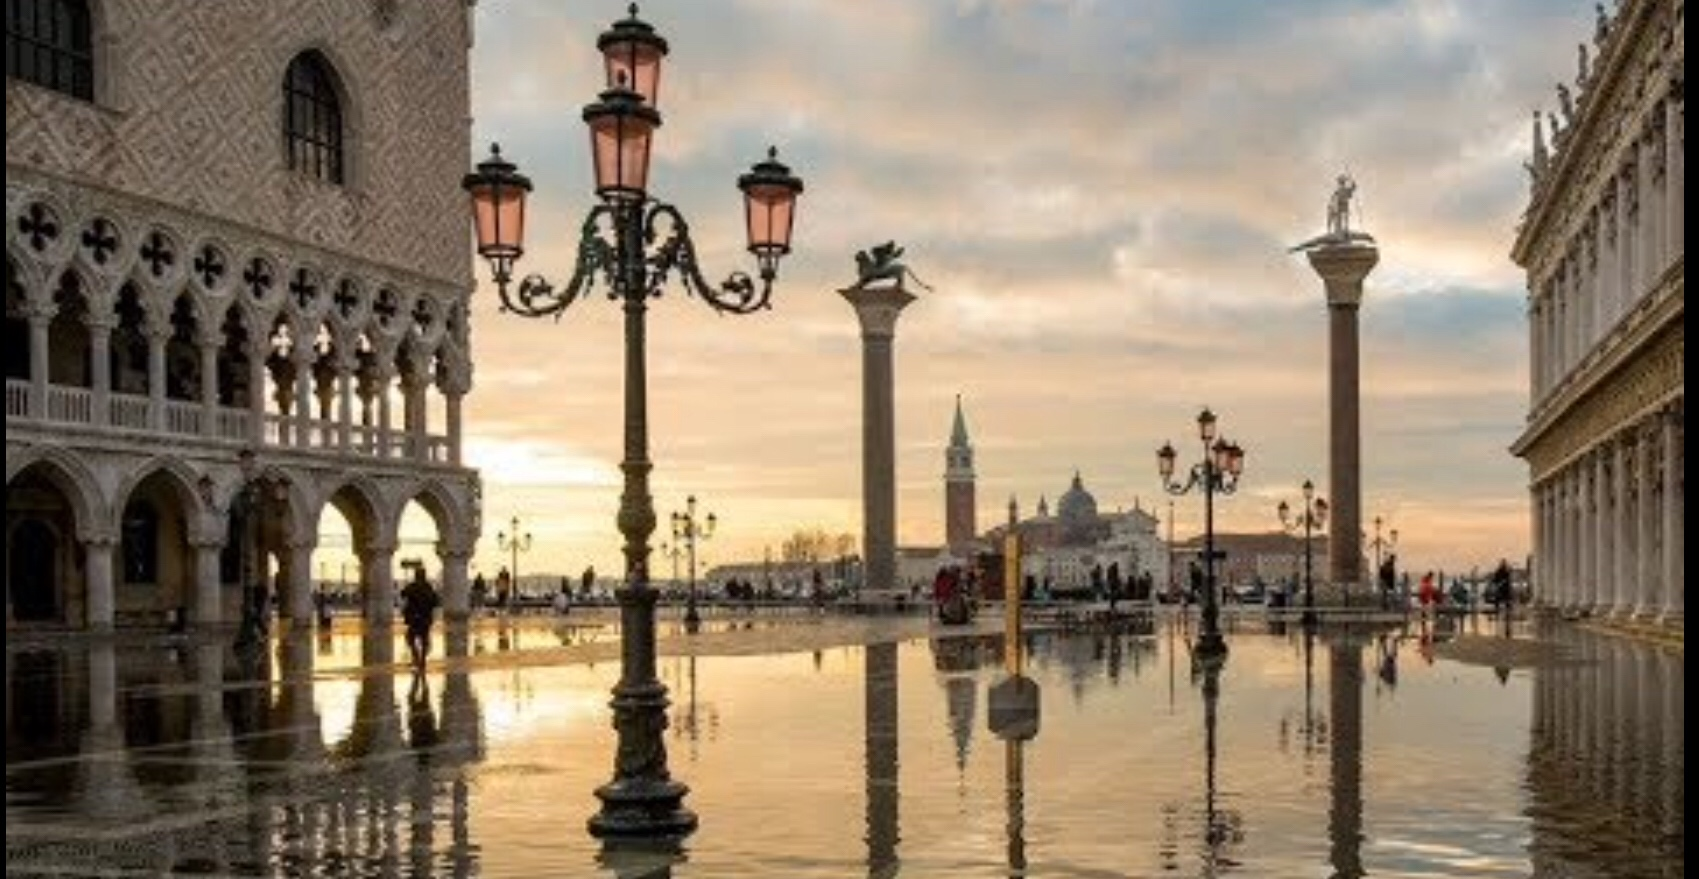 Venice suffers acqua alta